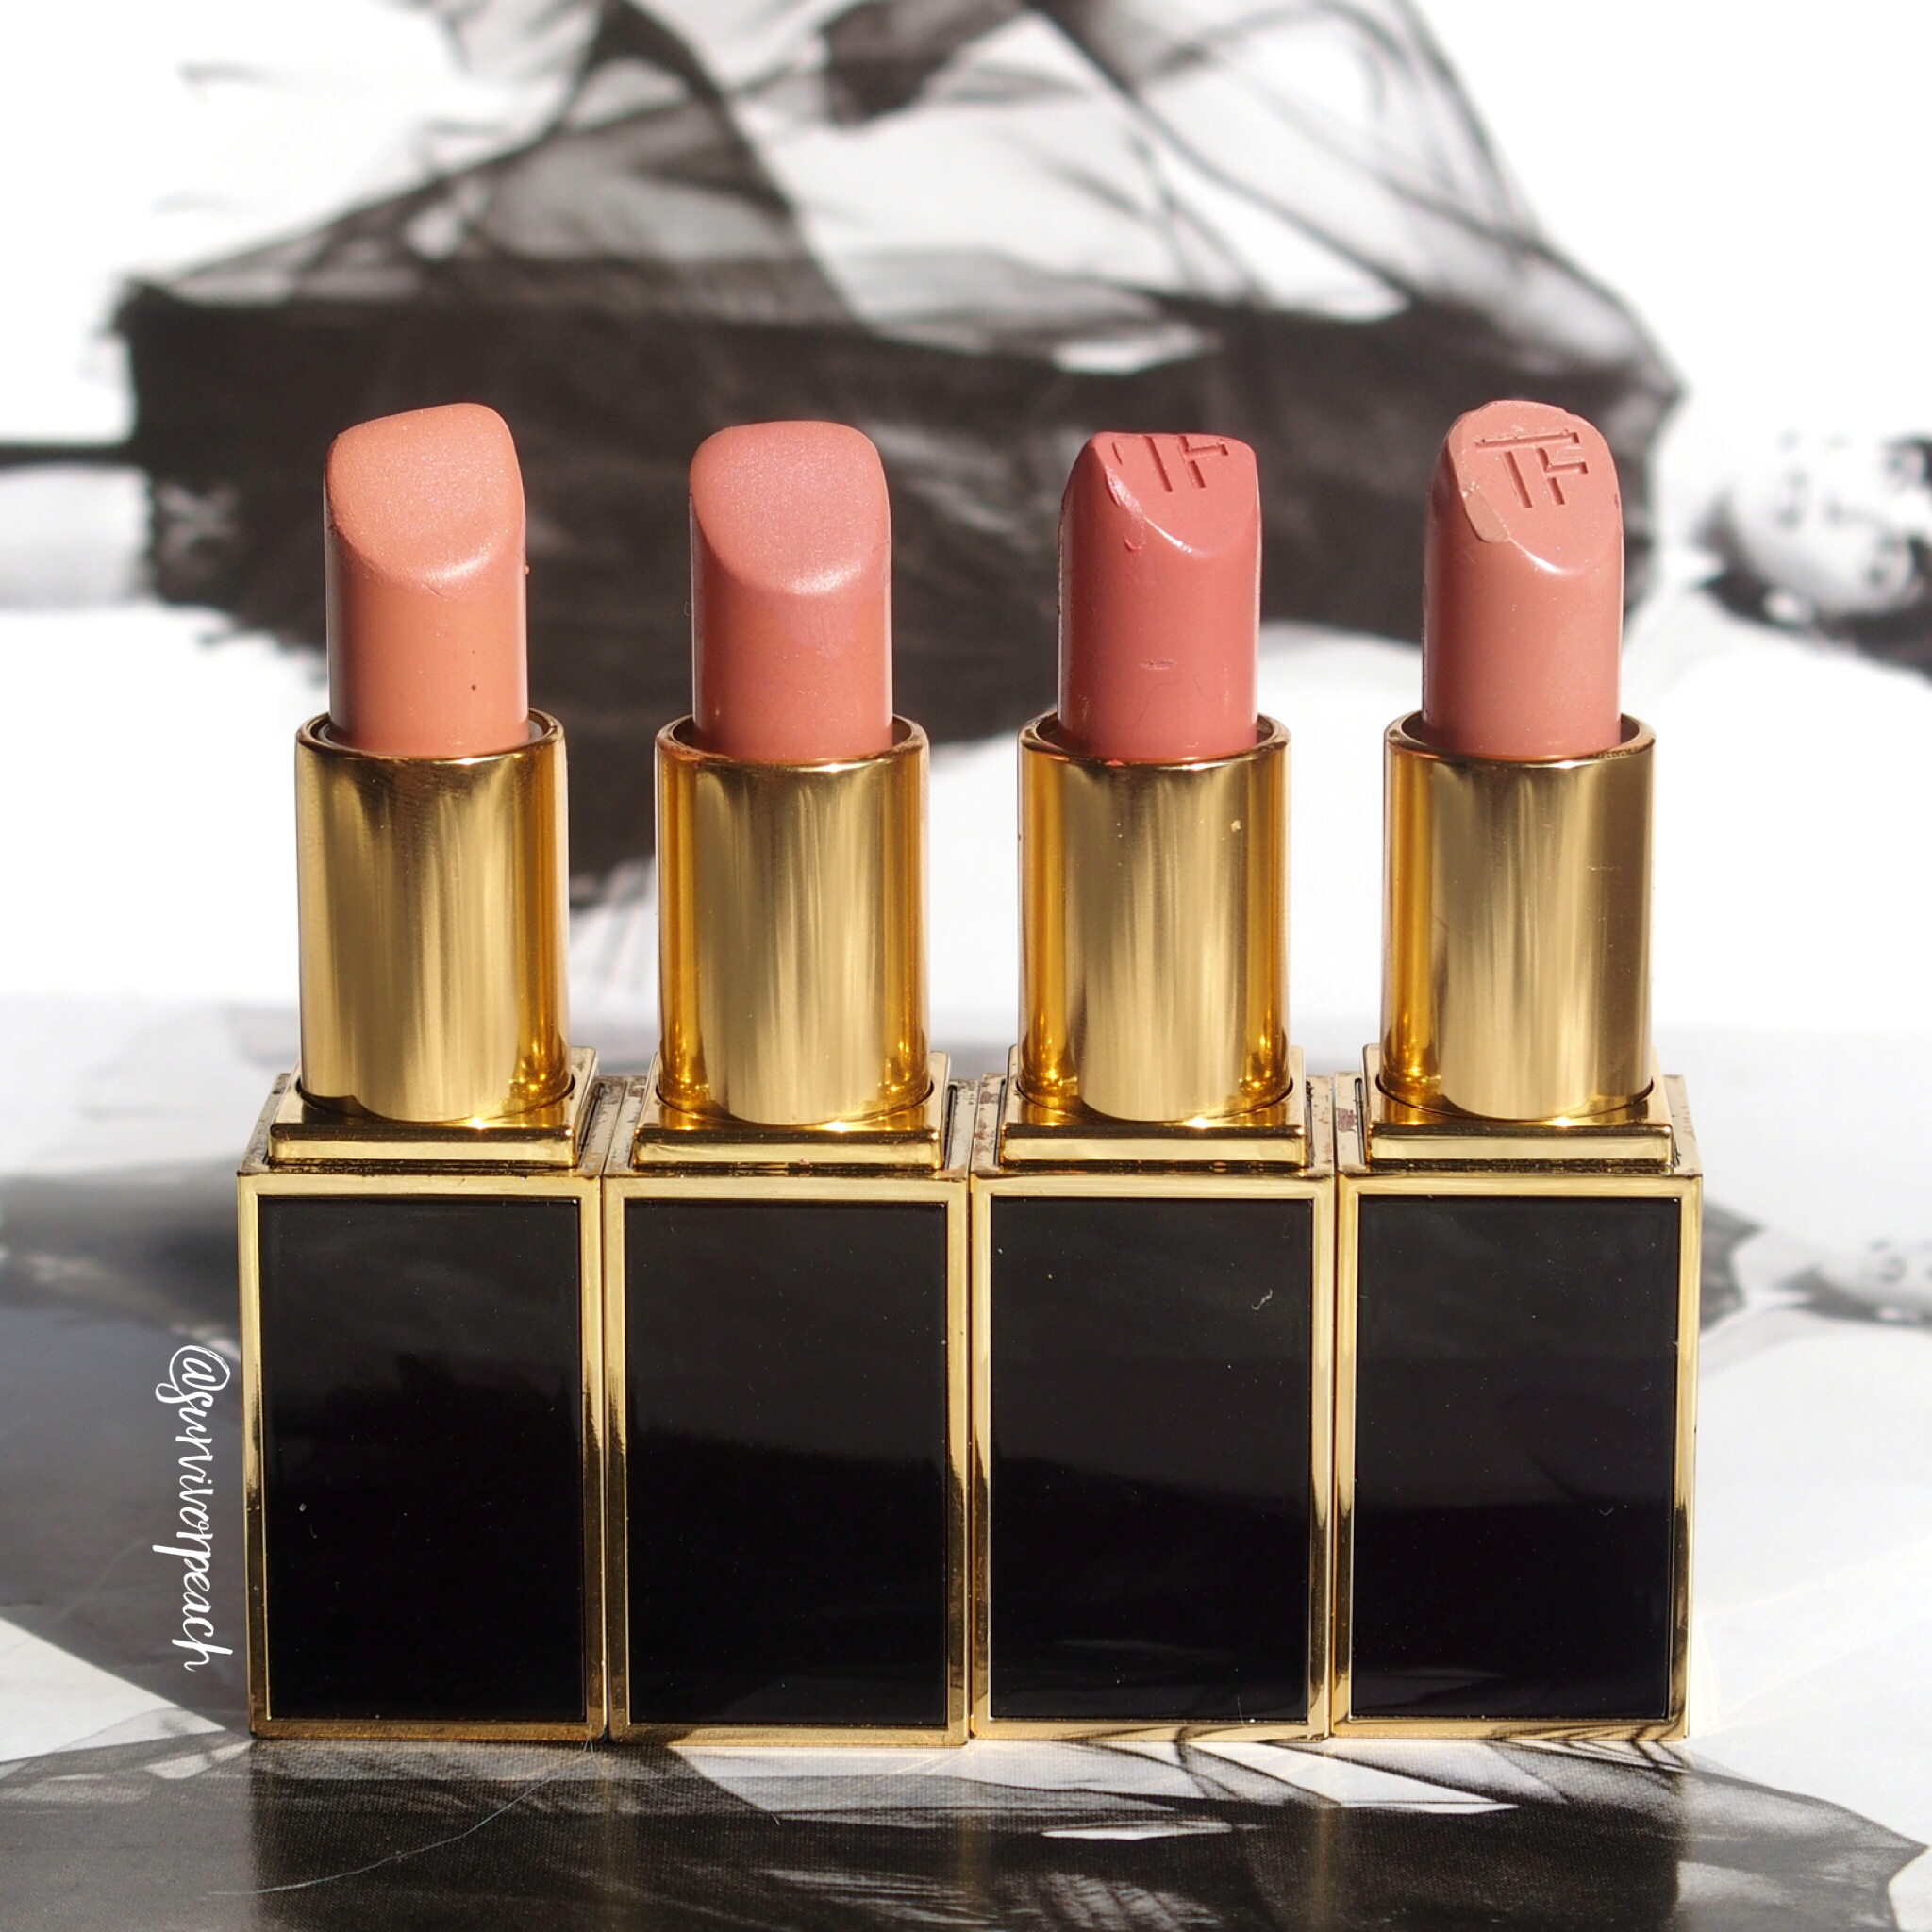 Tom Ford Lipsticks in Spanish Pink, Pink Dusk, First Time, Blush Nude